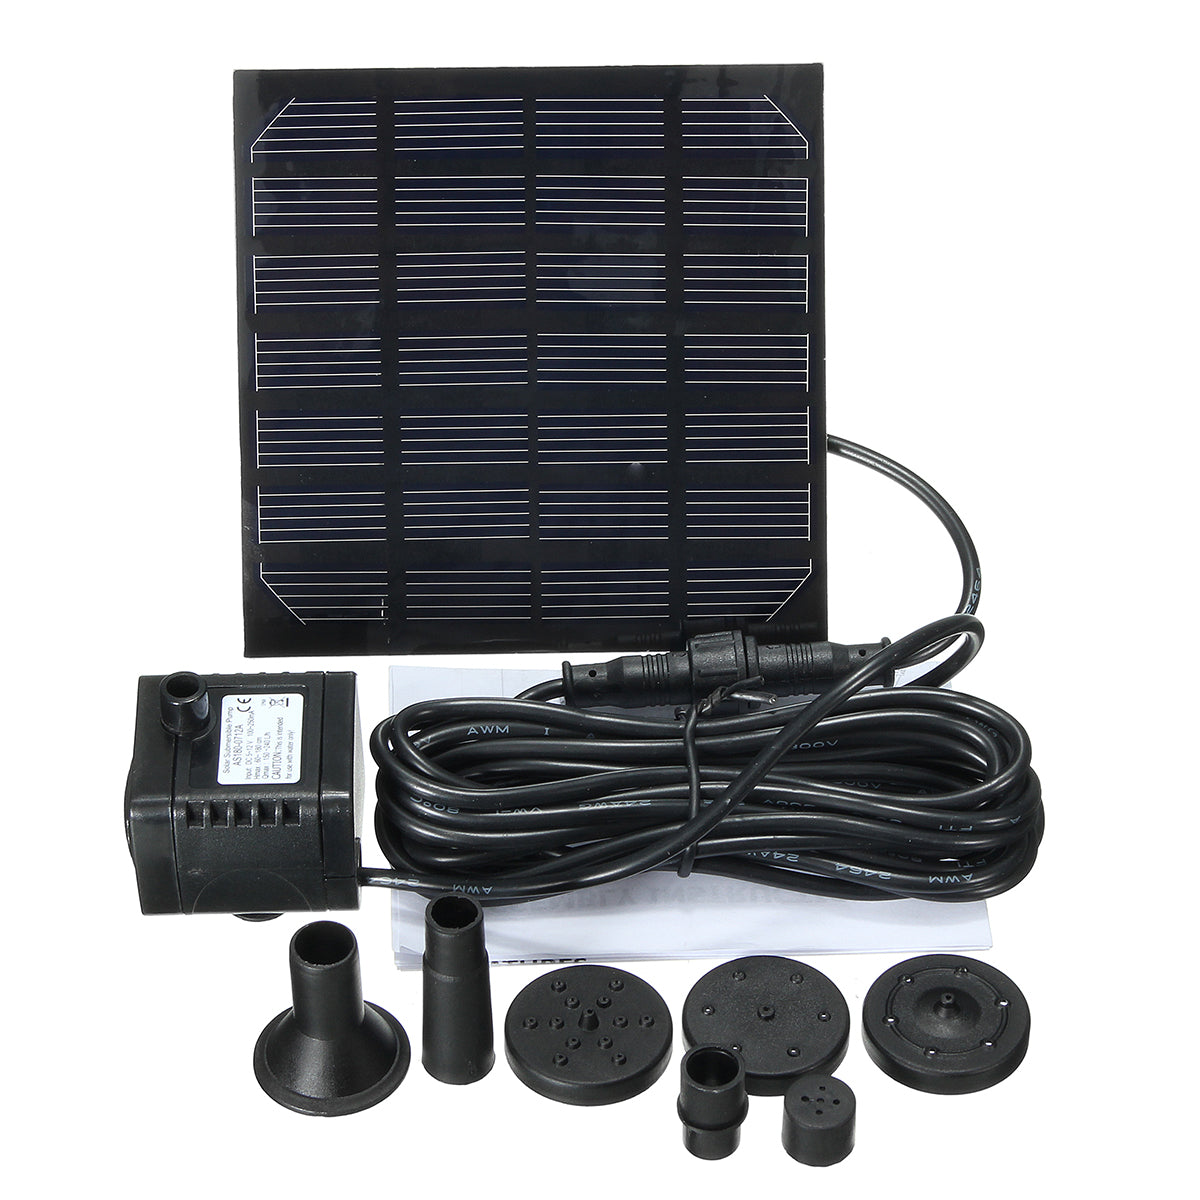 LYFGREEN™ Water Garden Patio 1.2W Solar Panel Pool Bird Bath Fountain Water Pump with 4 Nozzles